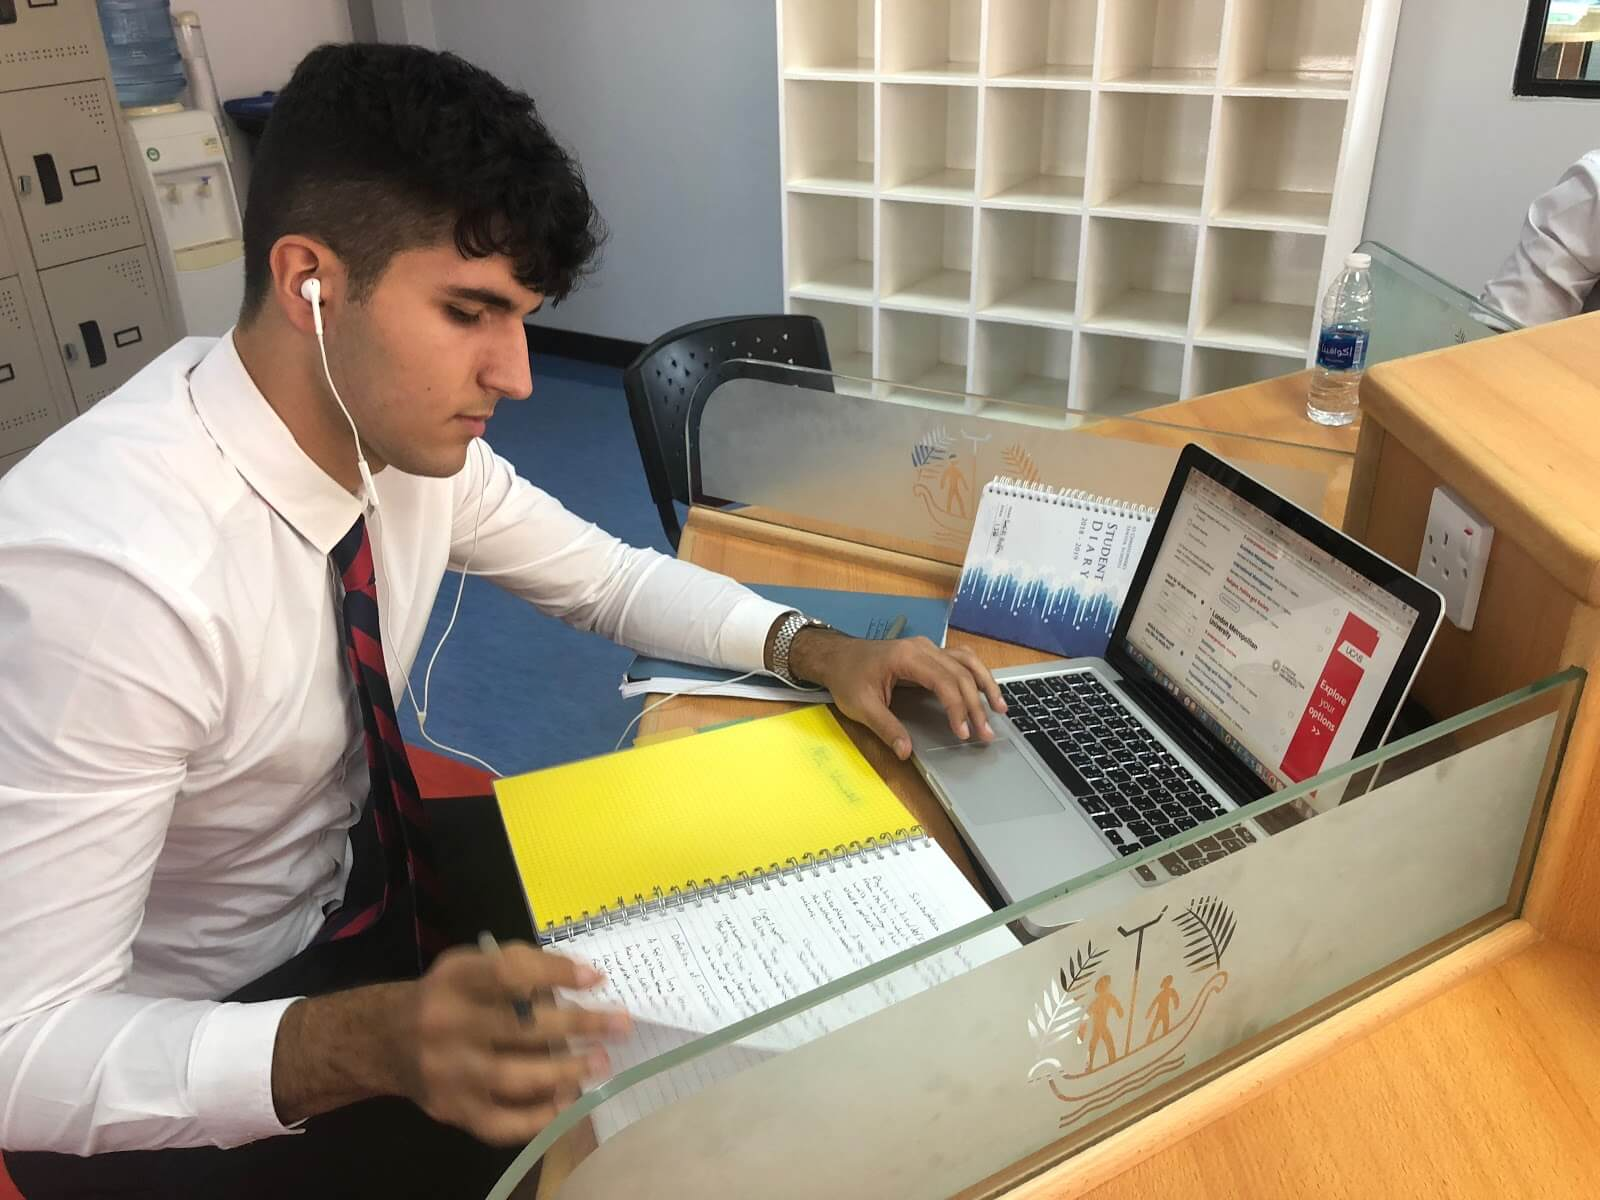 Supervised study: Work at A level can be hard to manage if you have got other responsibilities on top of your academic subjects to prioritise. However, our supervised study sessions give us time to catch up on missed work, or prepare for the next lesson. At this time of the year we also focus on university applications, personal statements and further research. Knowing our Head of Year and Form Tutor are there to give their support and experience is a huge support.